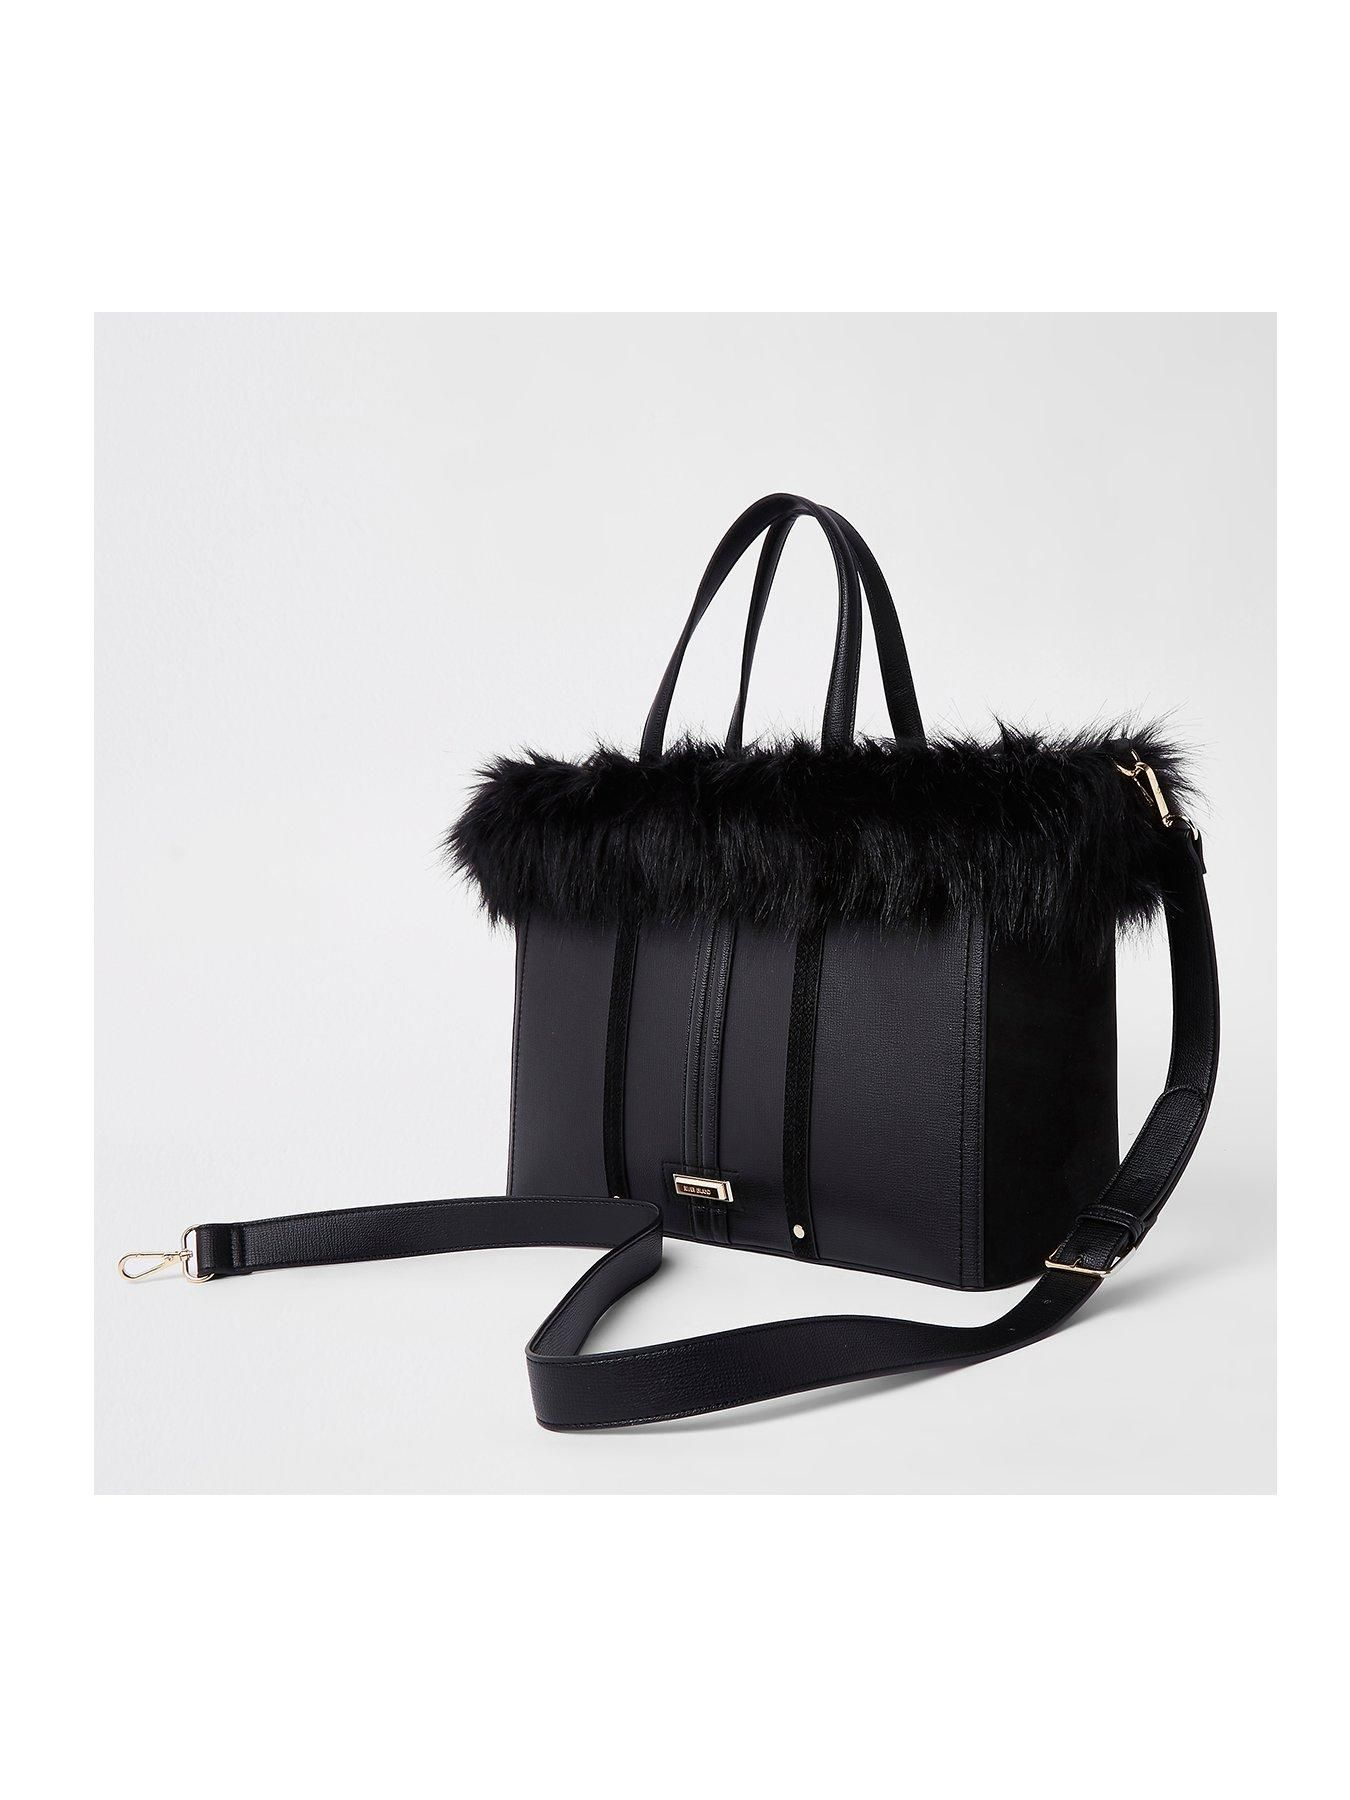 7ff336809d River Island River Island Faux Fur Top Tote Bag - Black